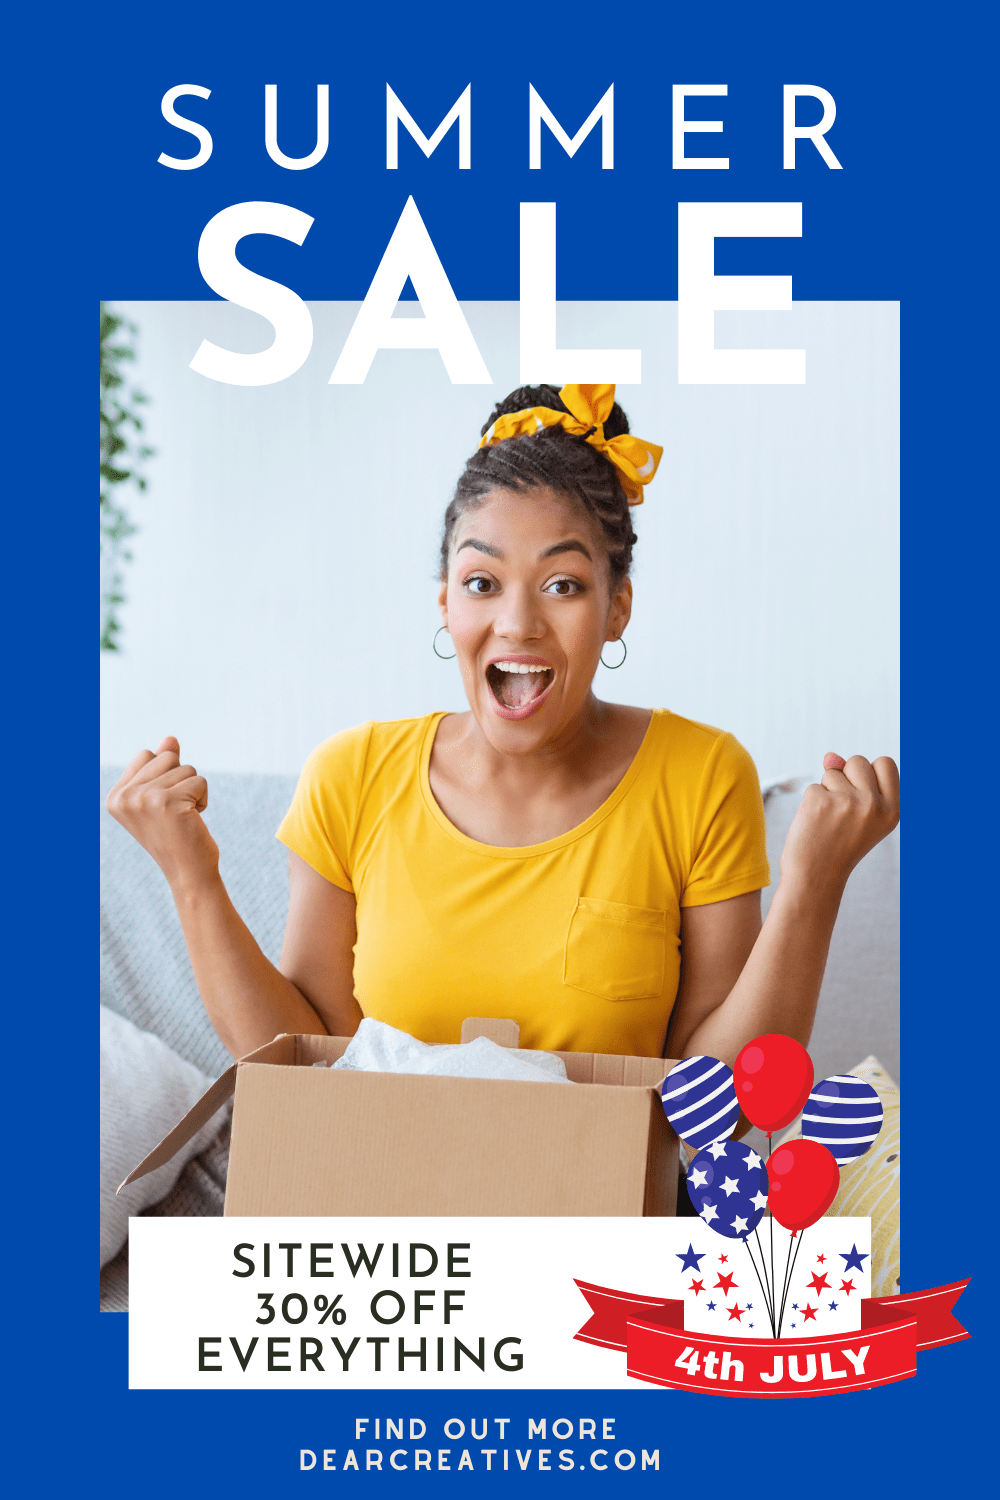 Jane's Summer Sale! Don't Miss This 4th of July Deals